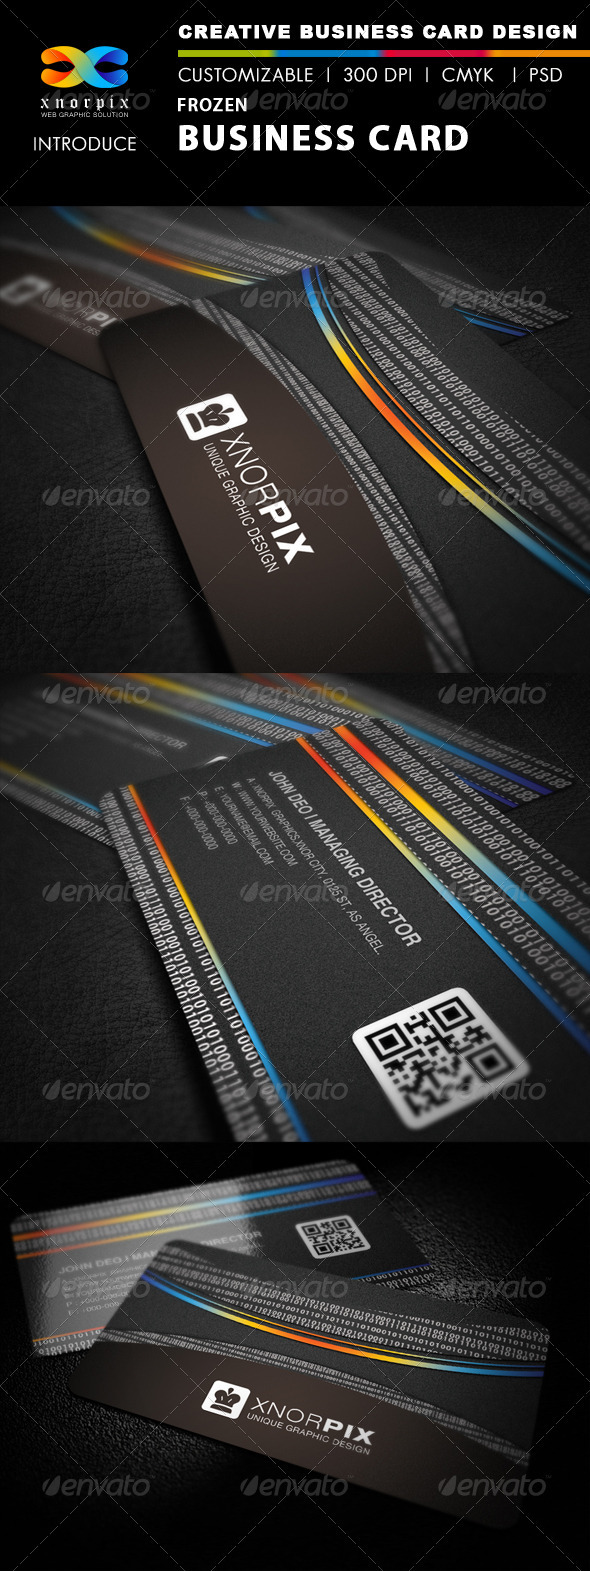 Frozen Business Card - Corporate Business Cards